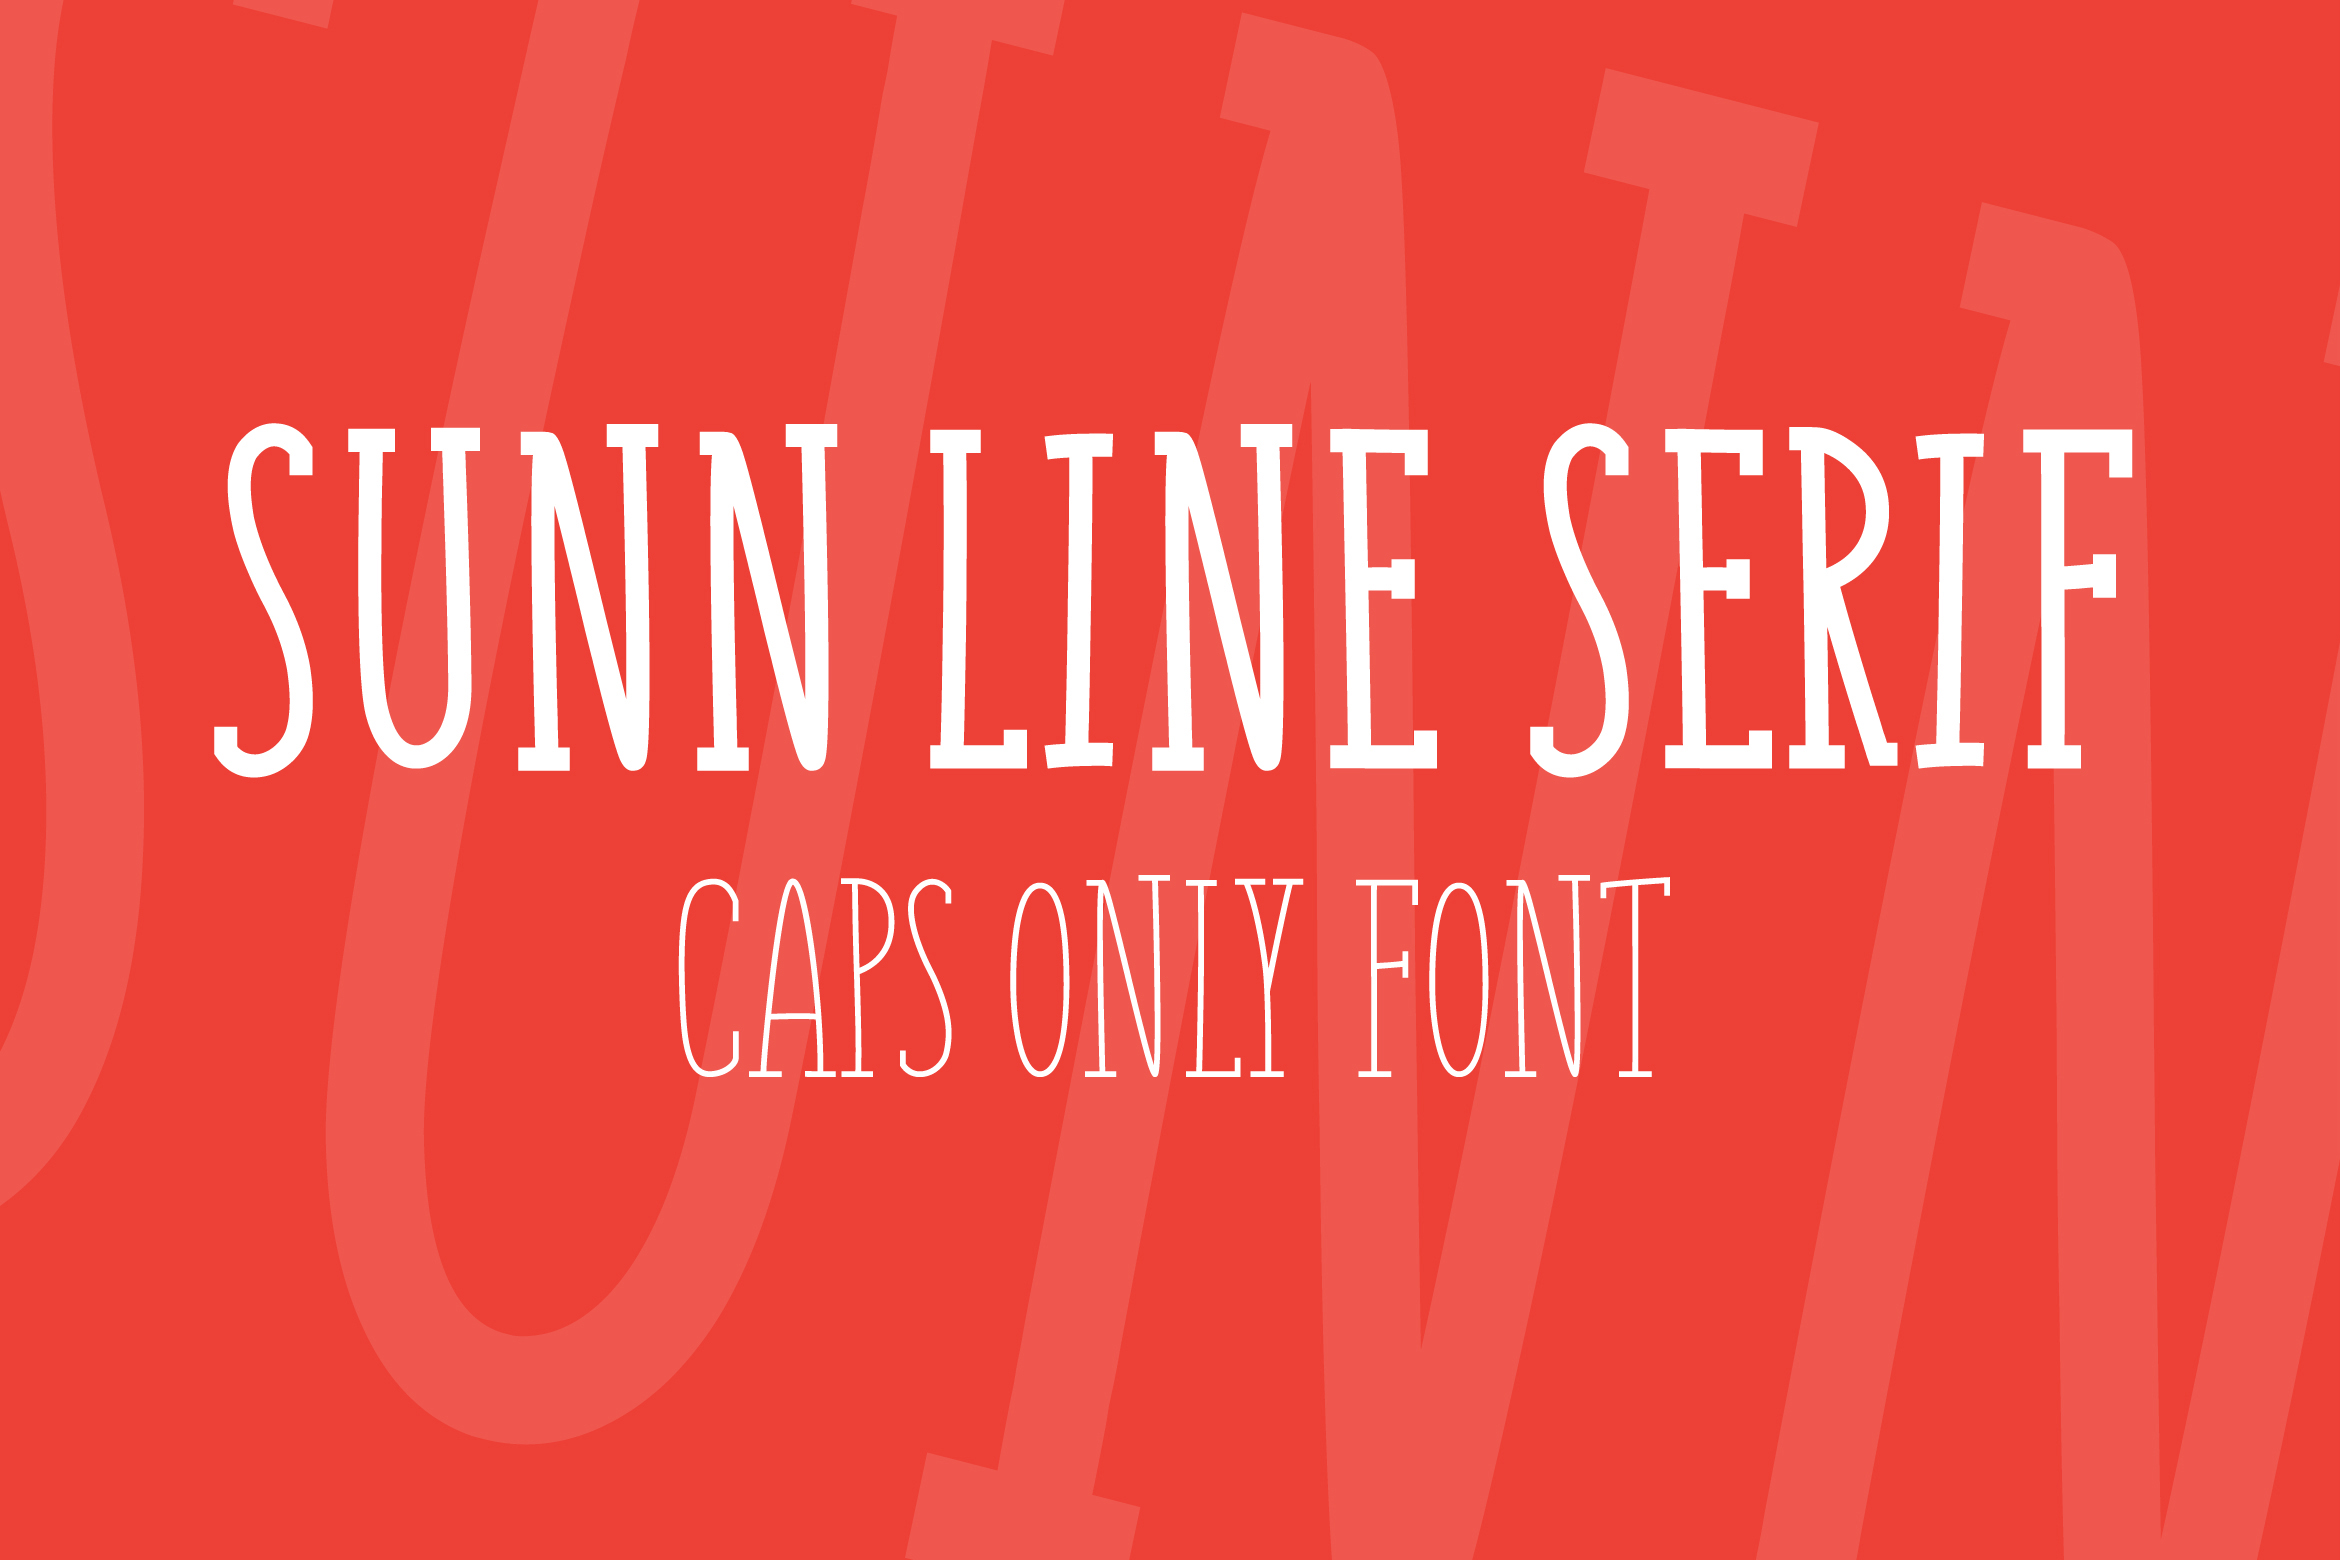 SUNN Serif Line Caps Only Font example image 1